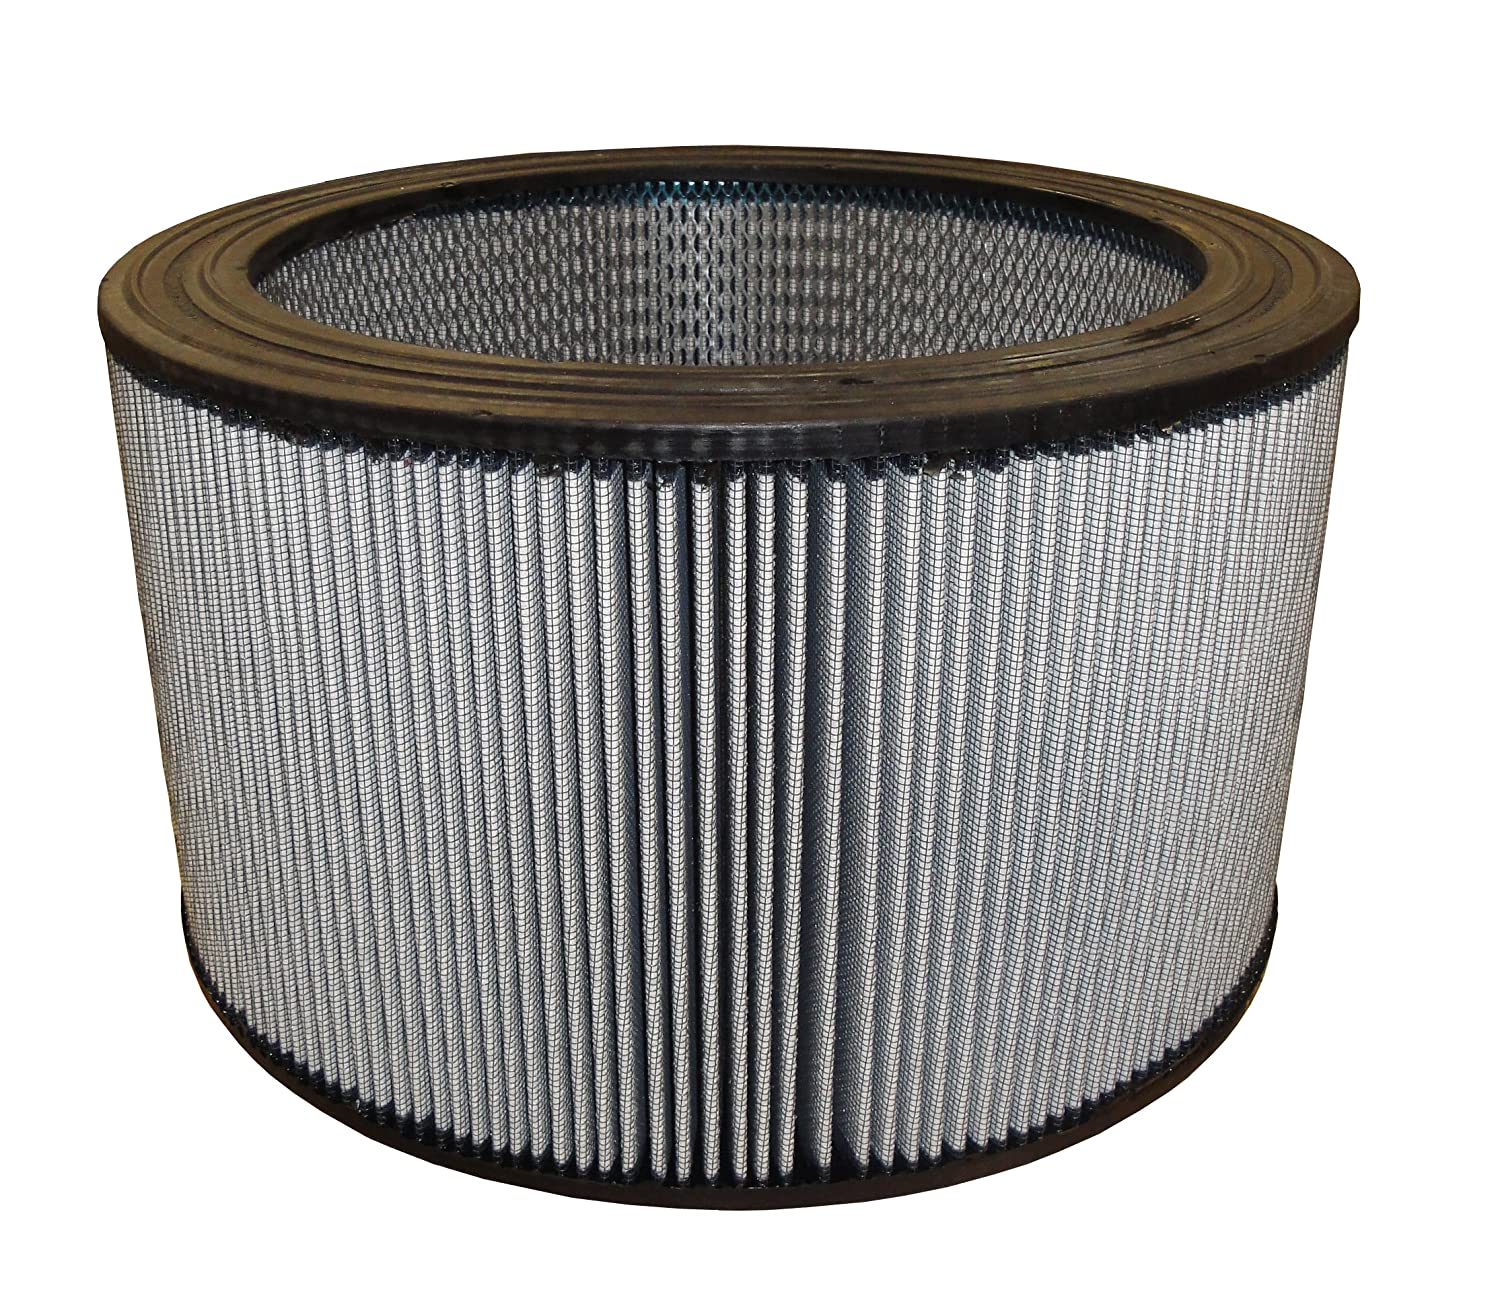 Solberg 32-13 Polyester Filter 10 Max Max 48% OFF 78% OFF Blower Replacement Cartridge